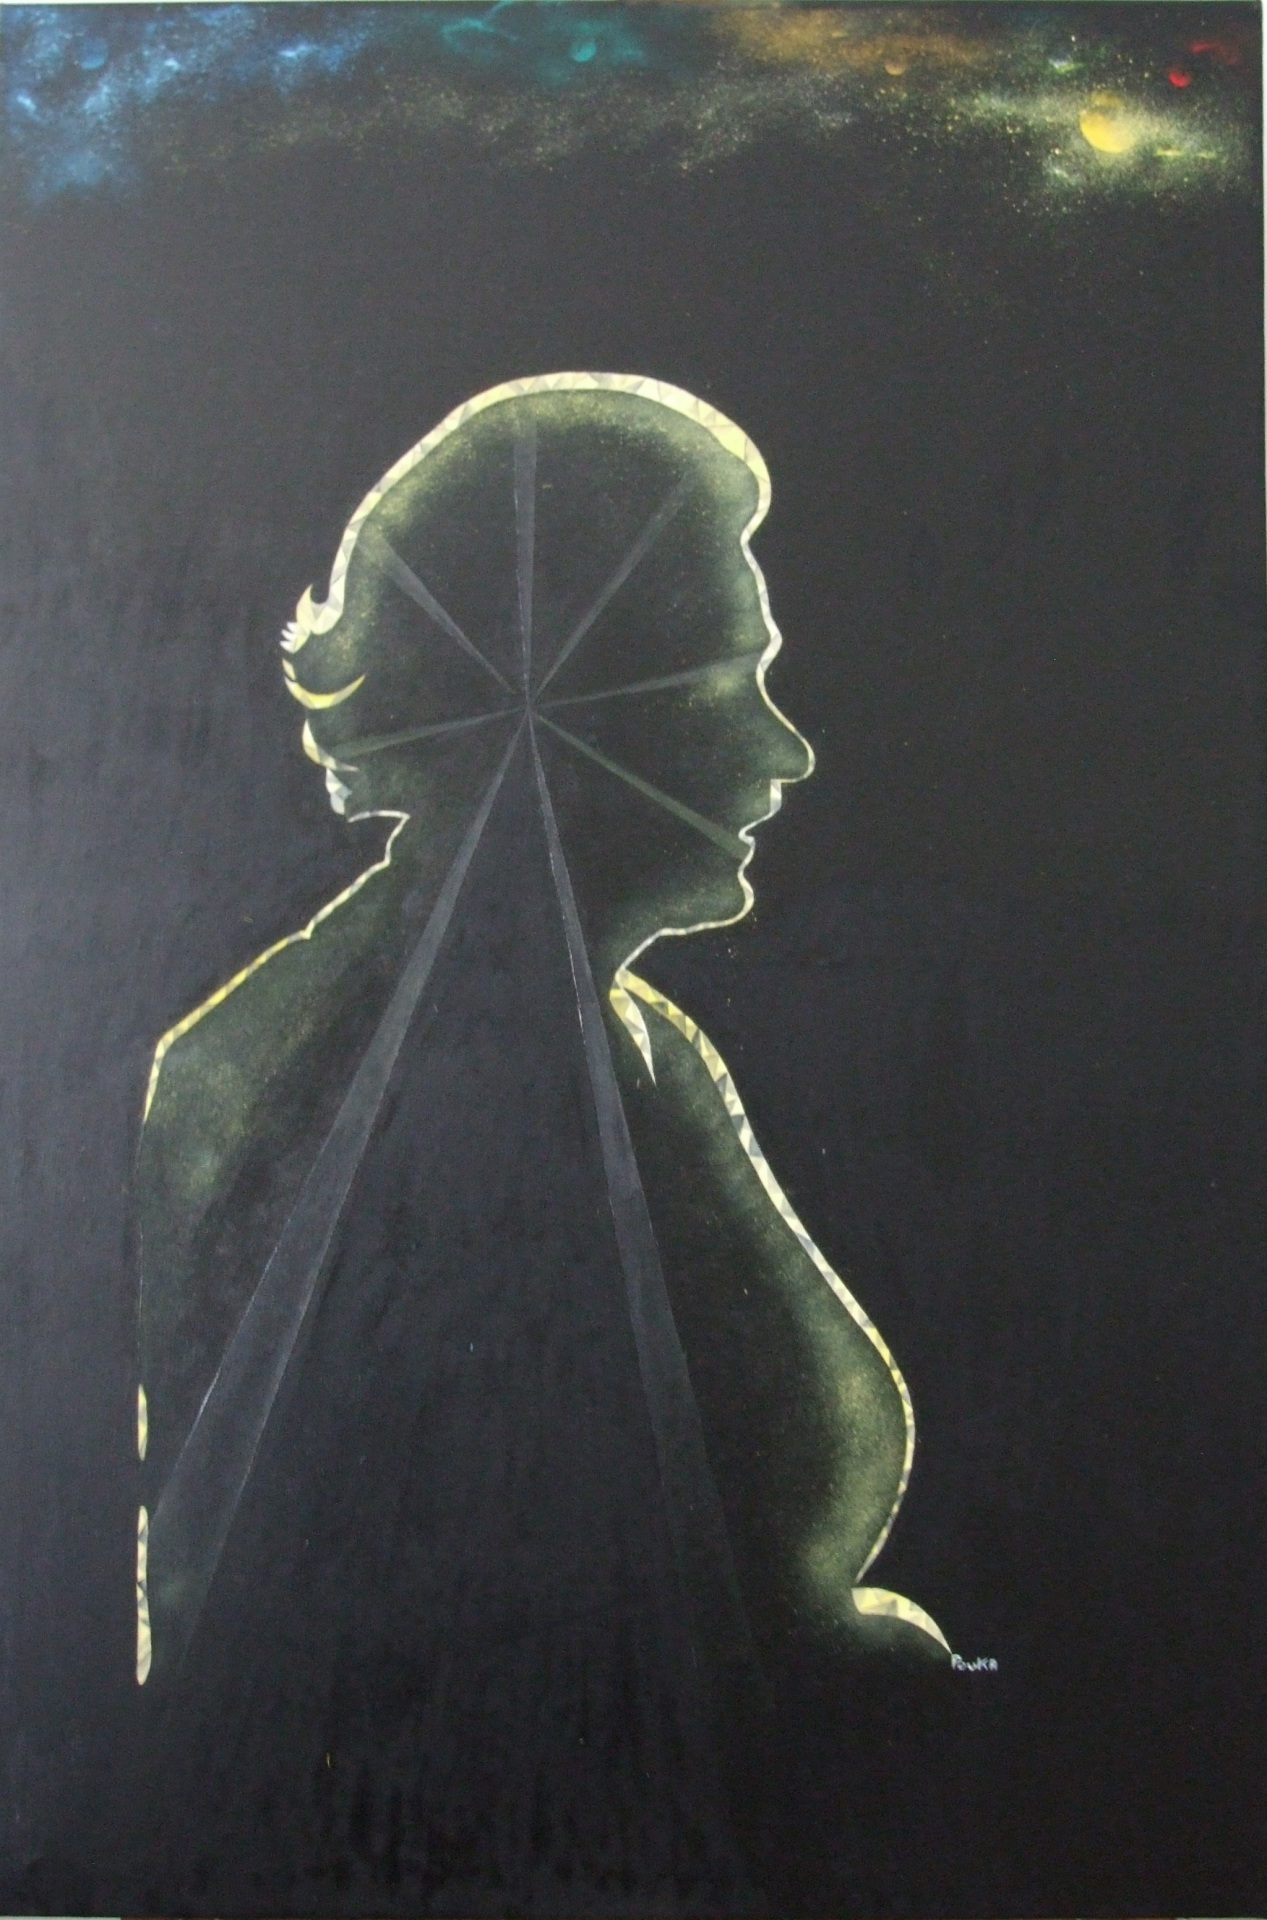 Silhouette 79 x 109 cm - oil on canvas